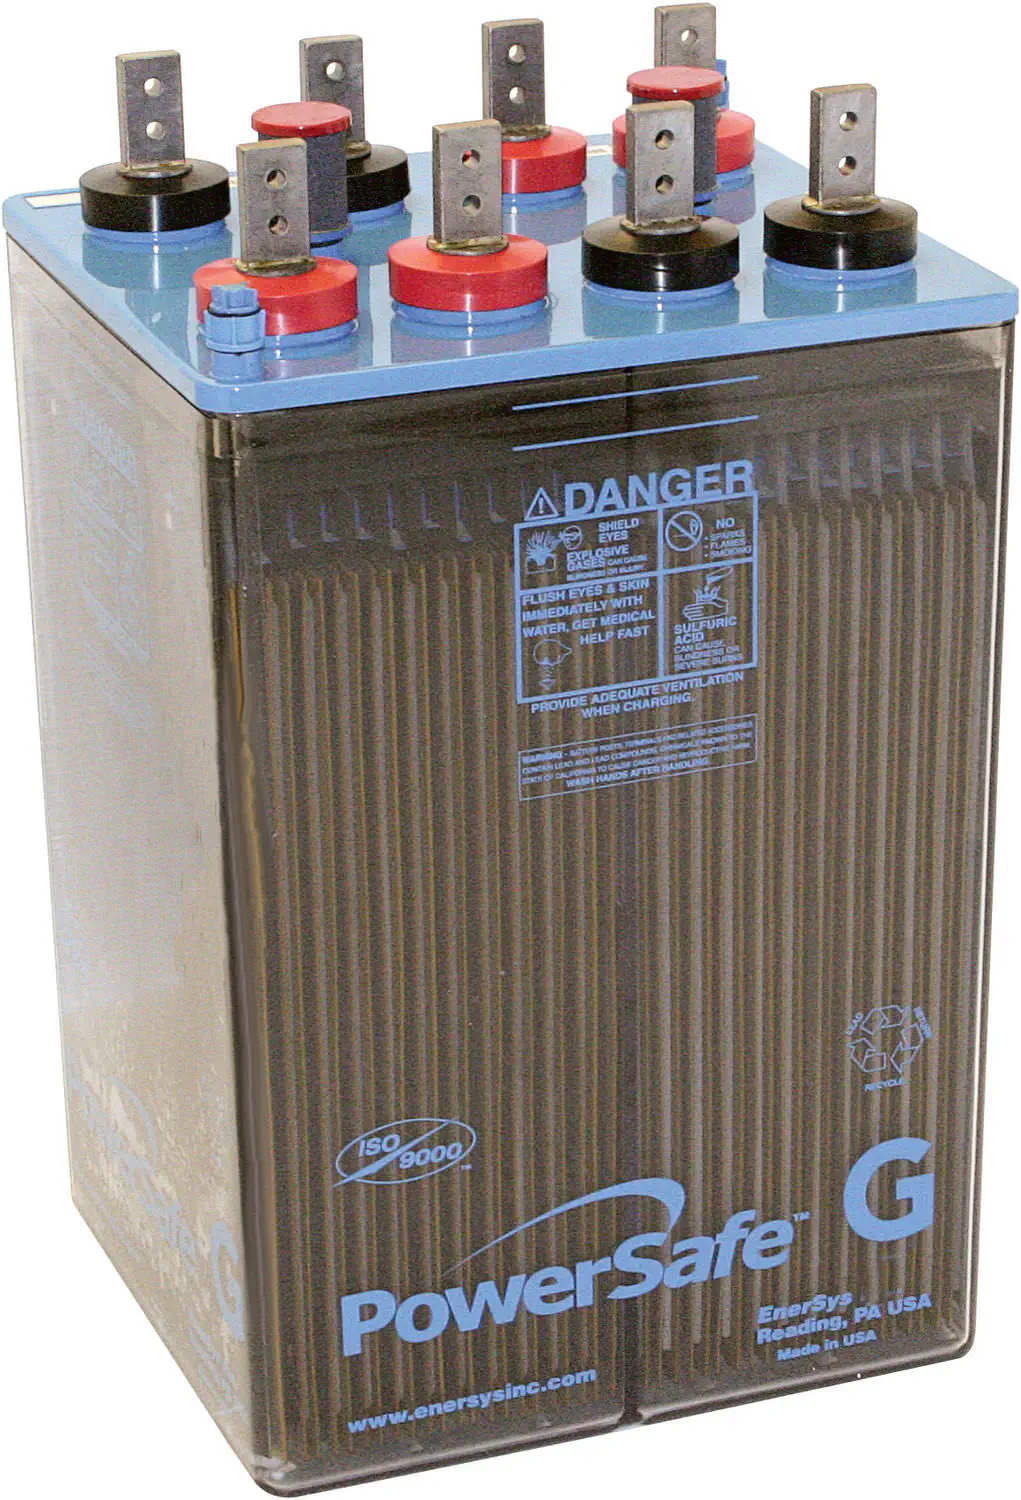 EnerSys PowerSafe GN-35